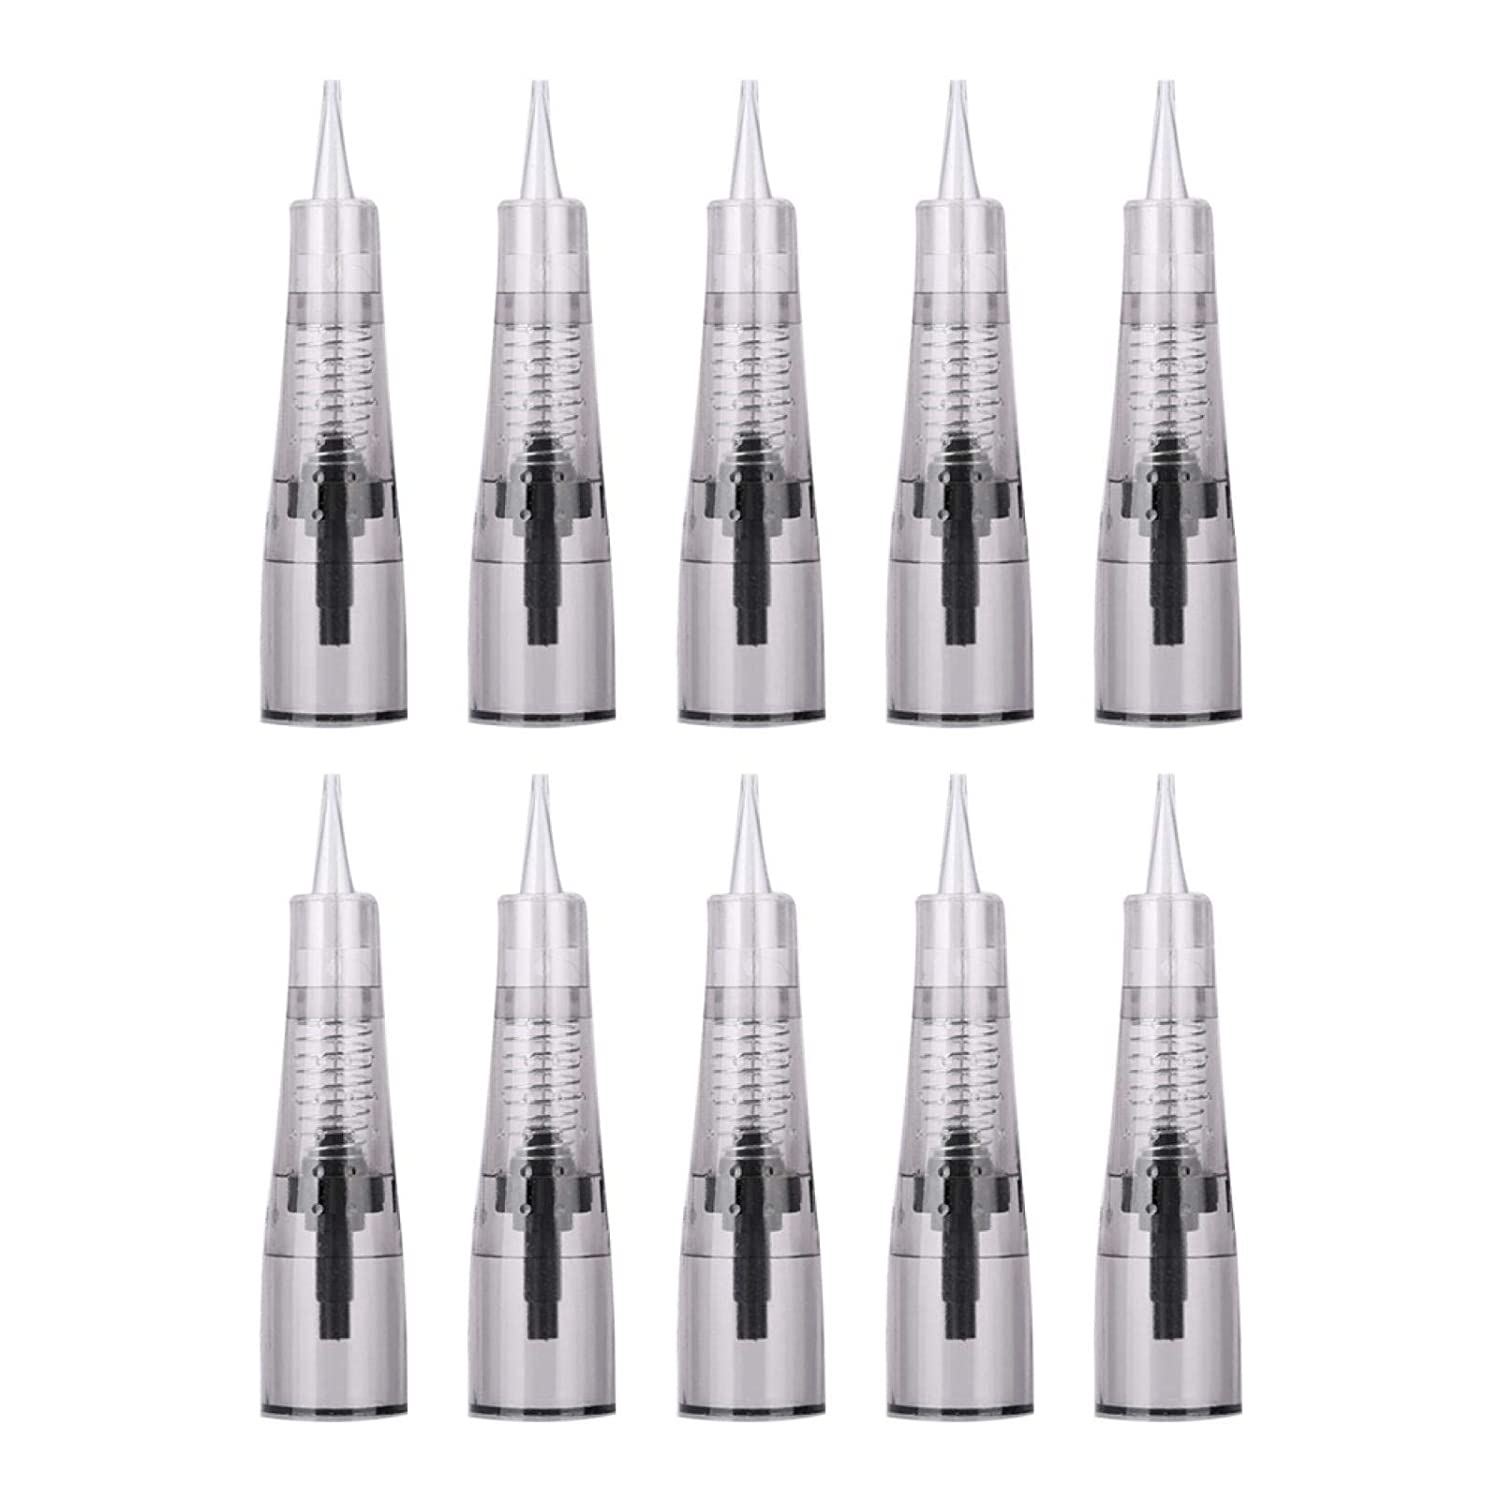 Credence 10Pcs Tattoo Cartridges For Permanent Care Fixed price for sale Personal Make